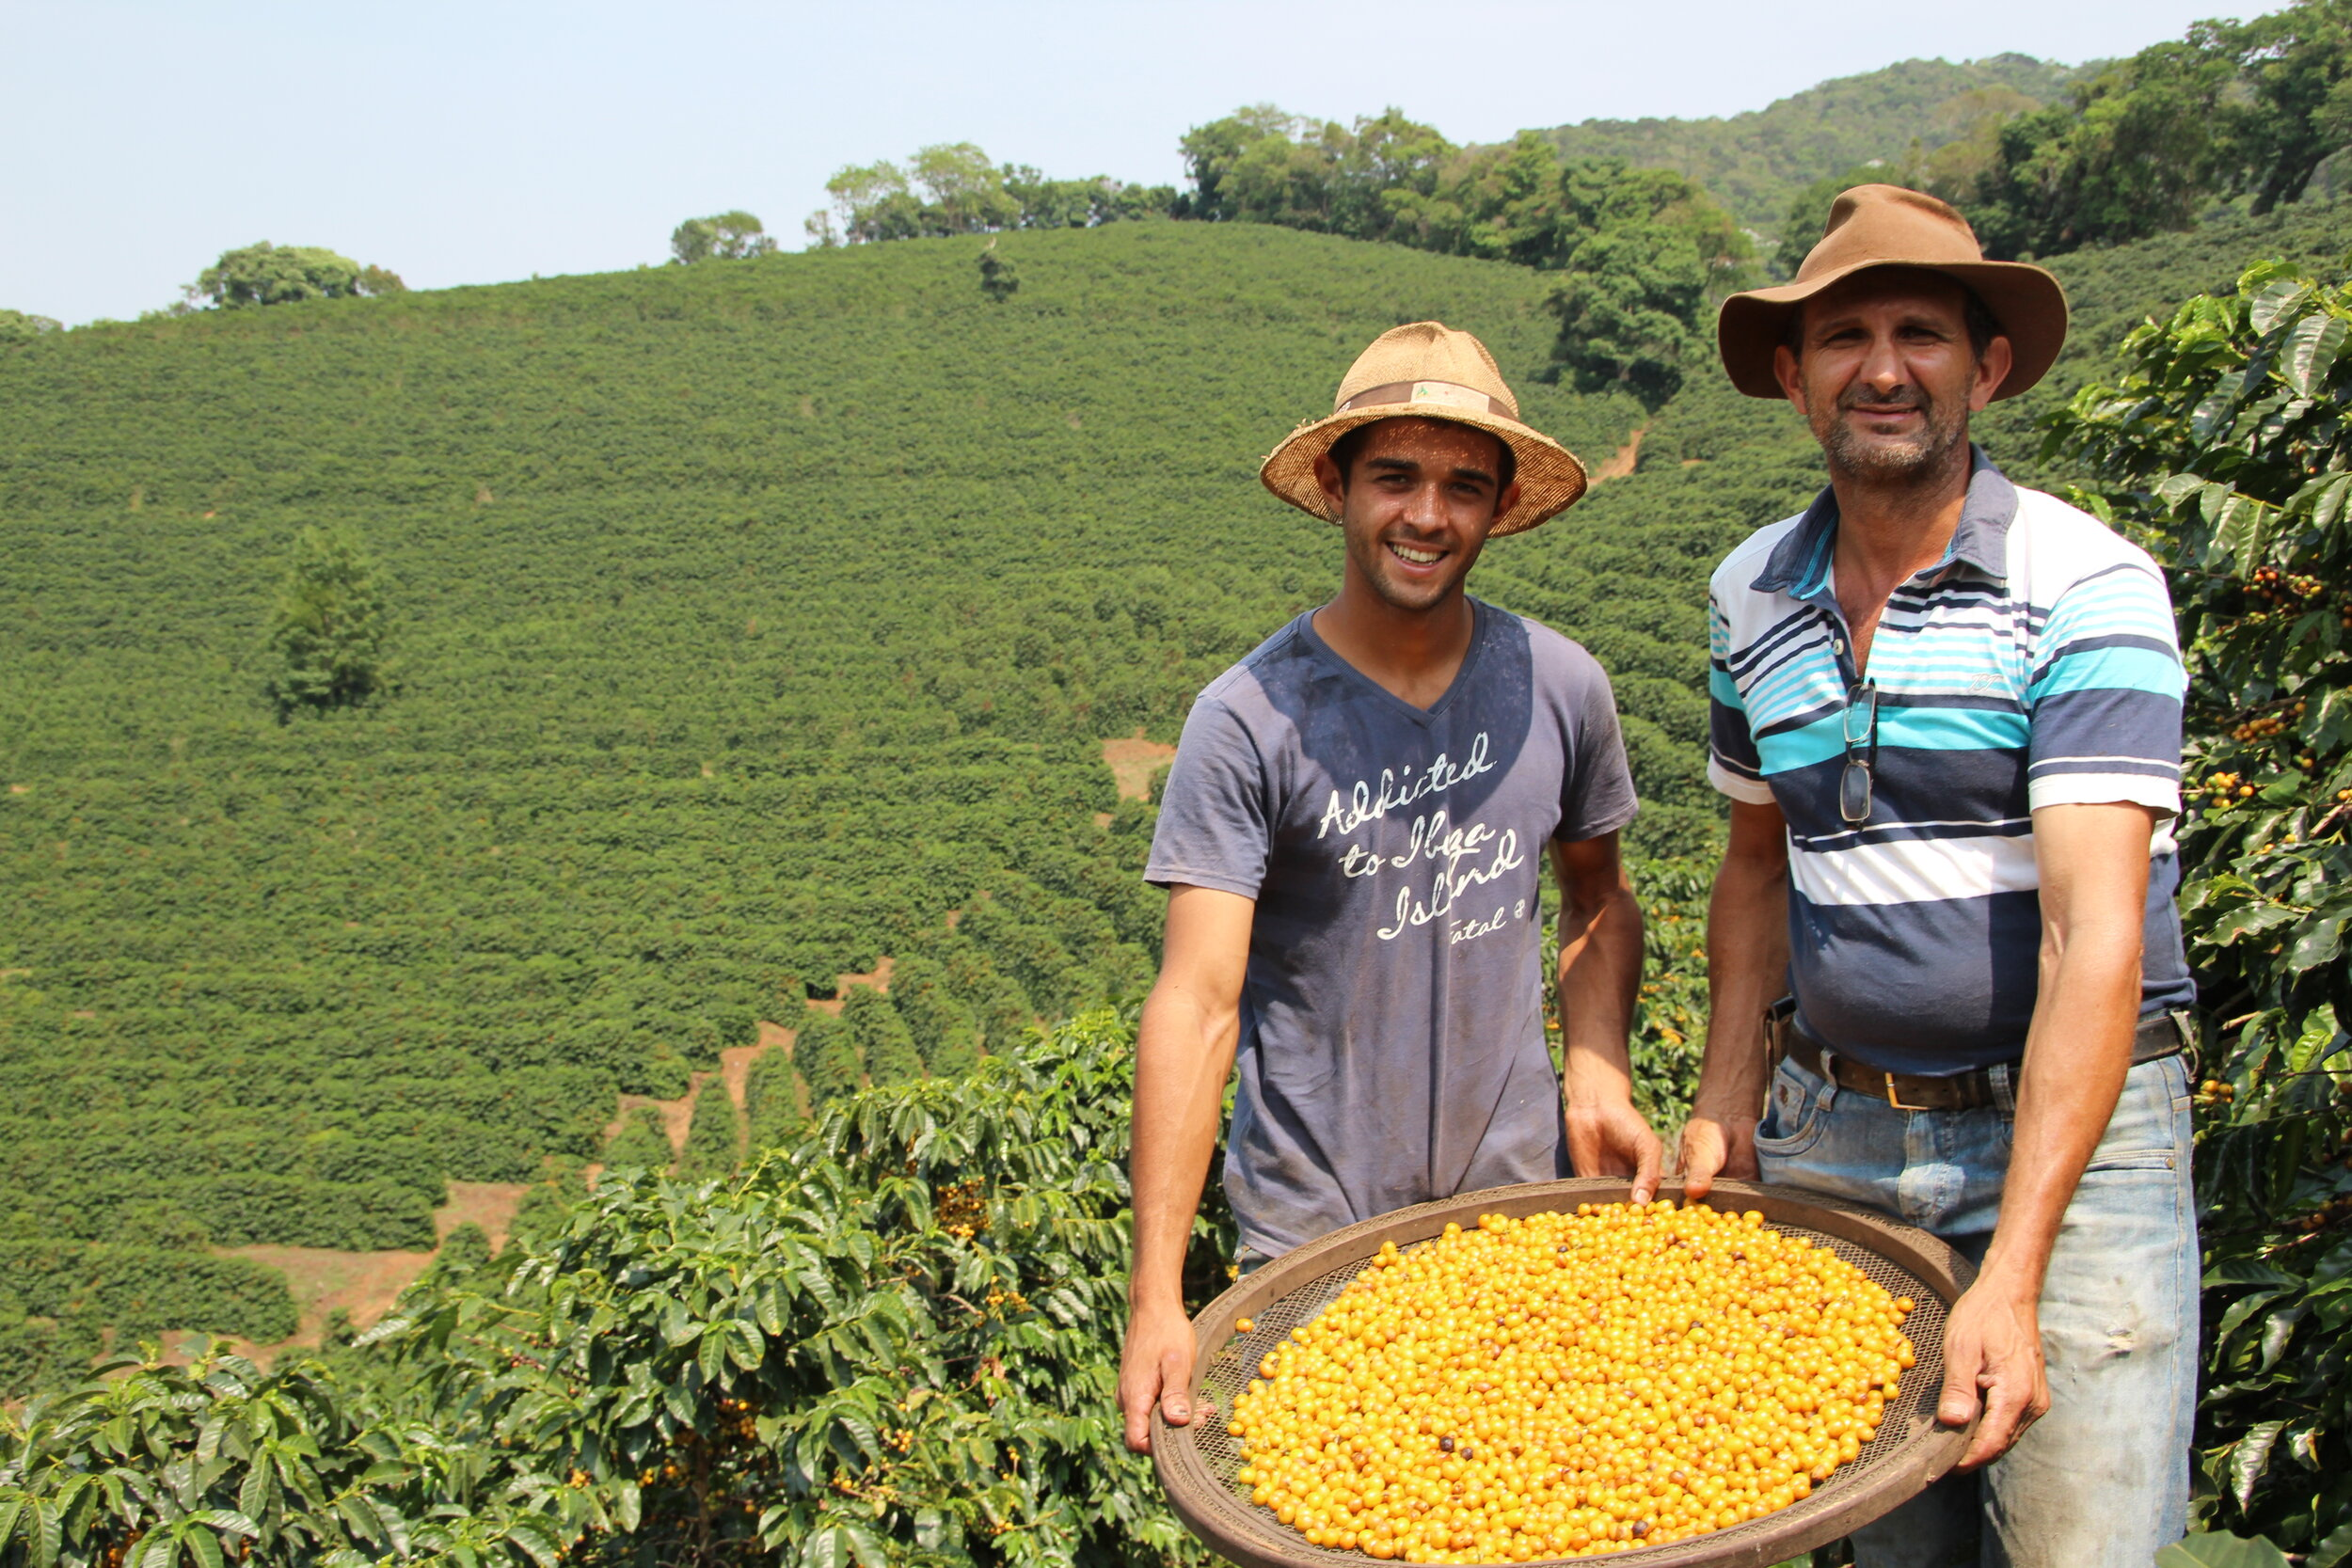 Sebastião and his son Helisson showing the quality of their harvest